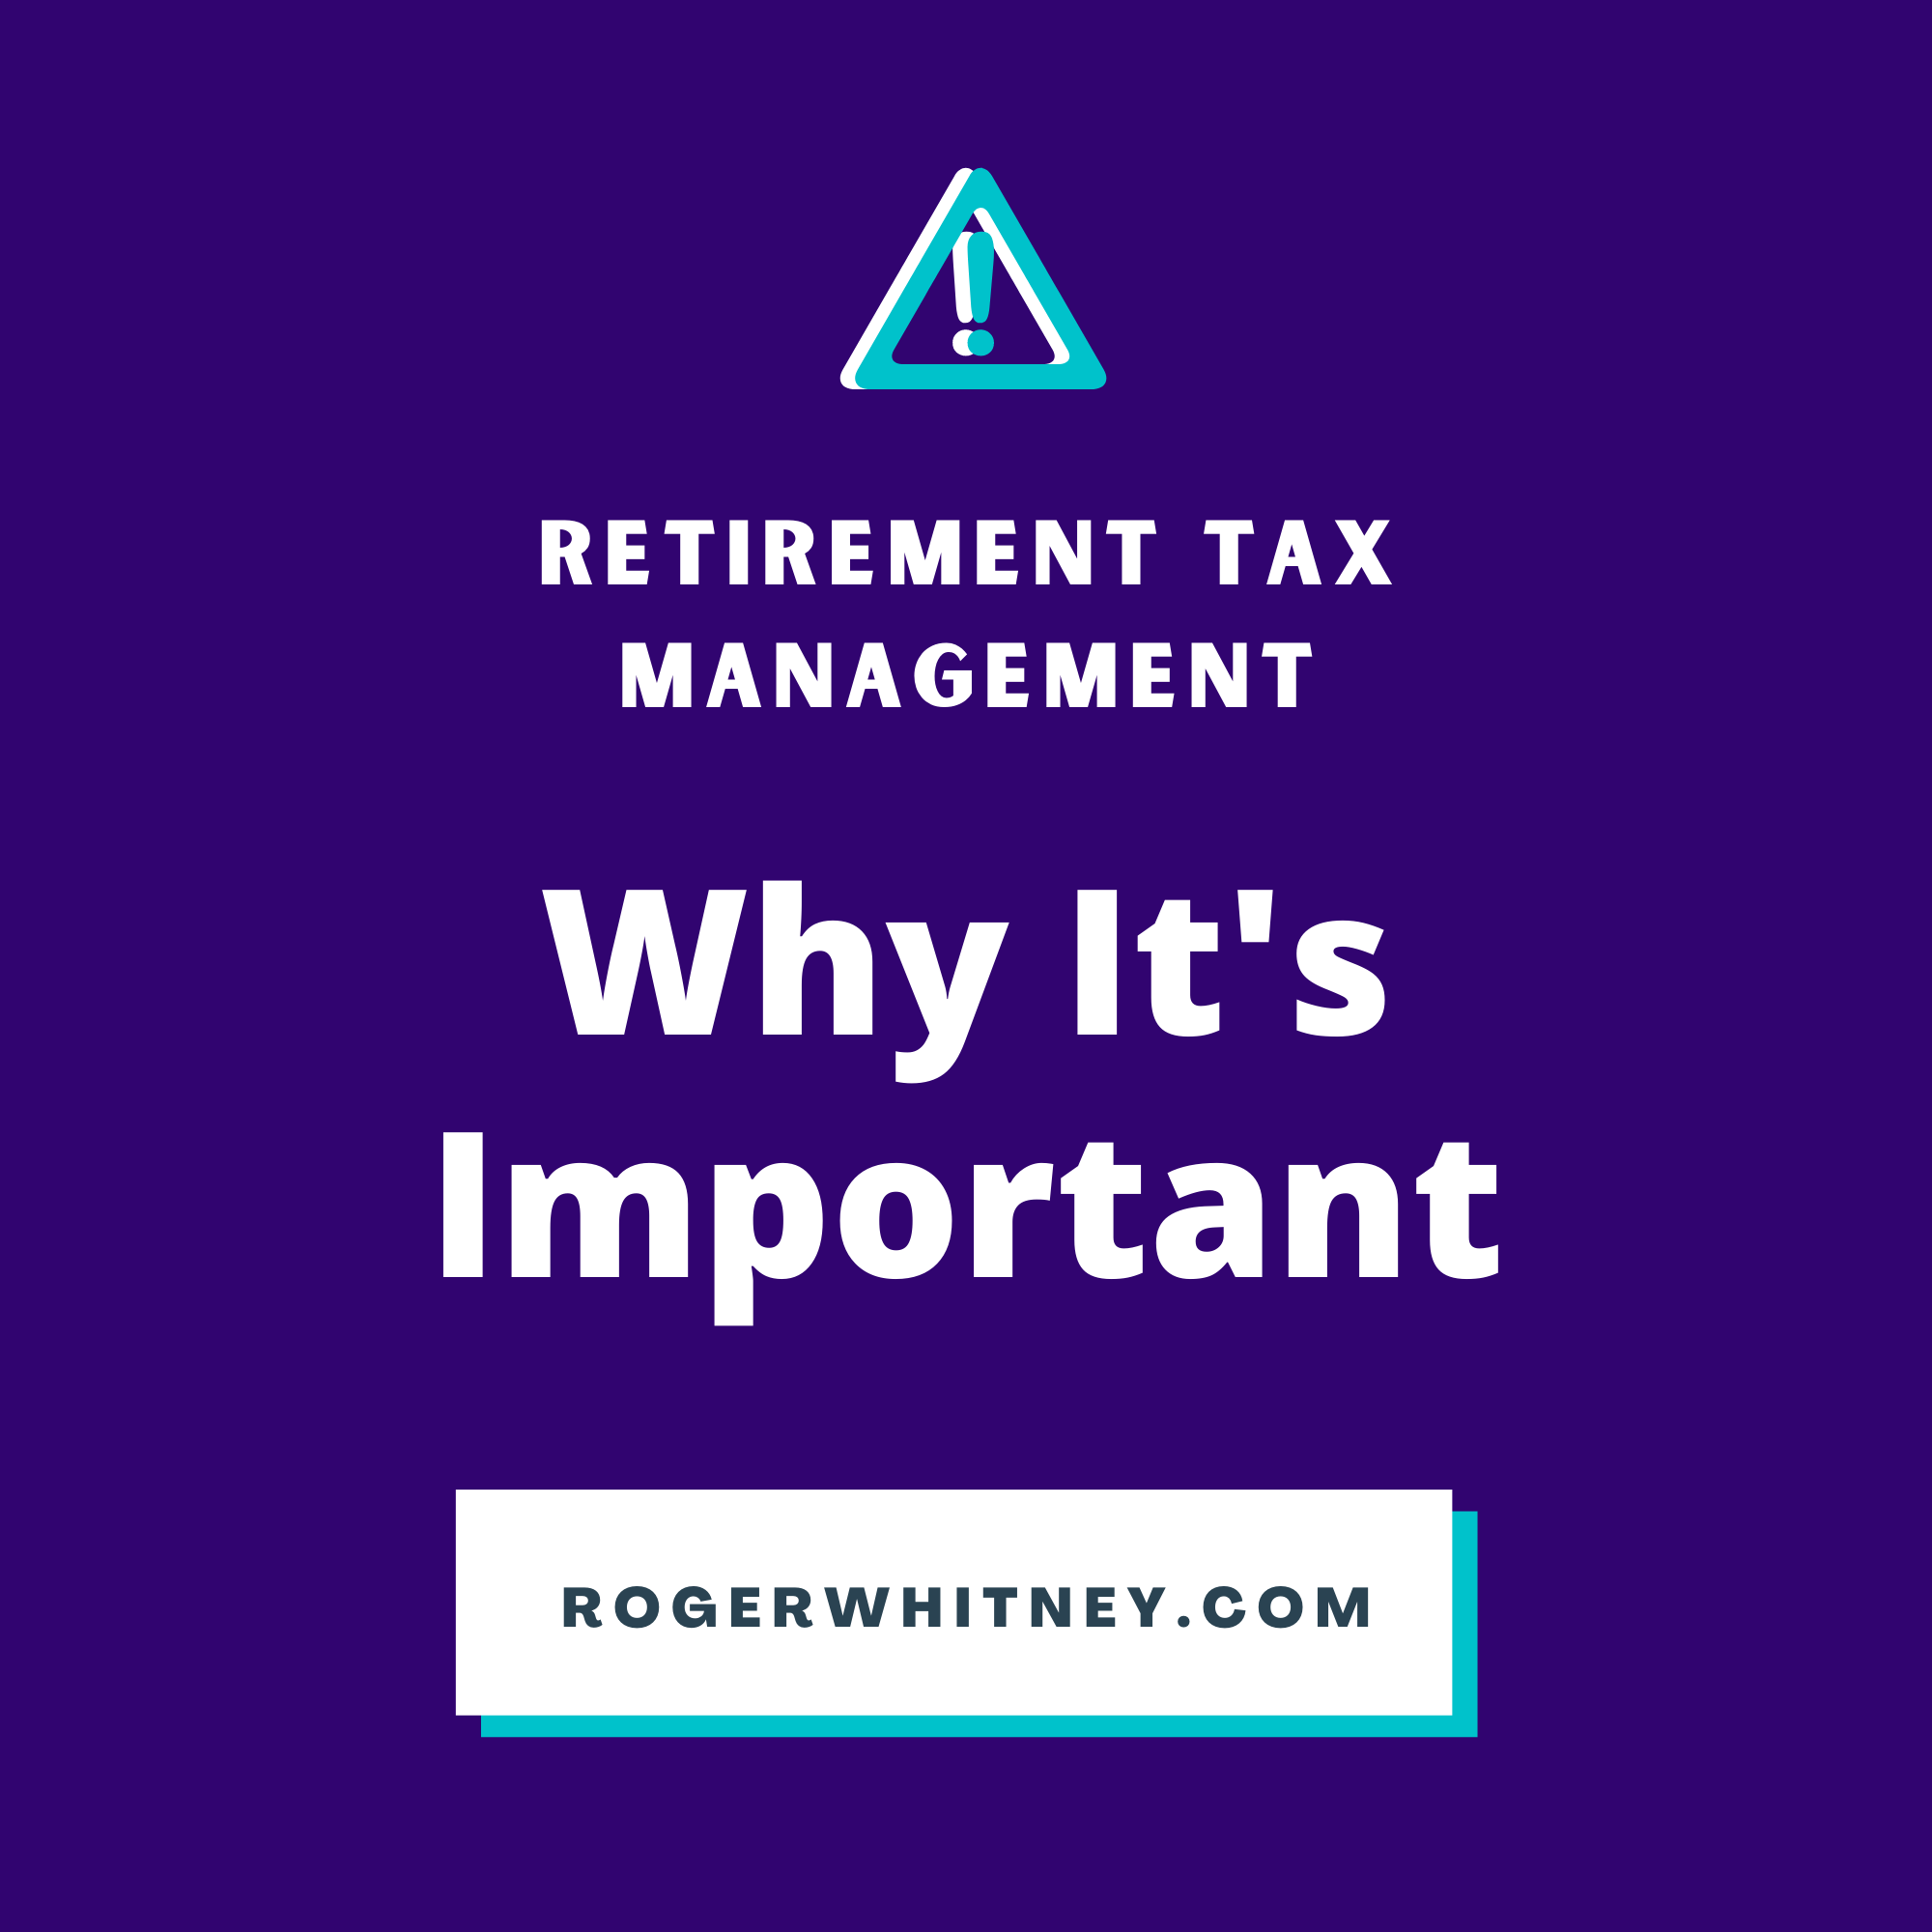 Retirement Tax Management: Why It's Important